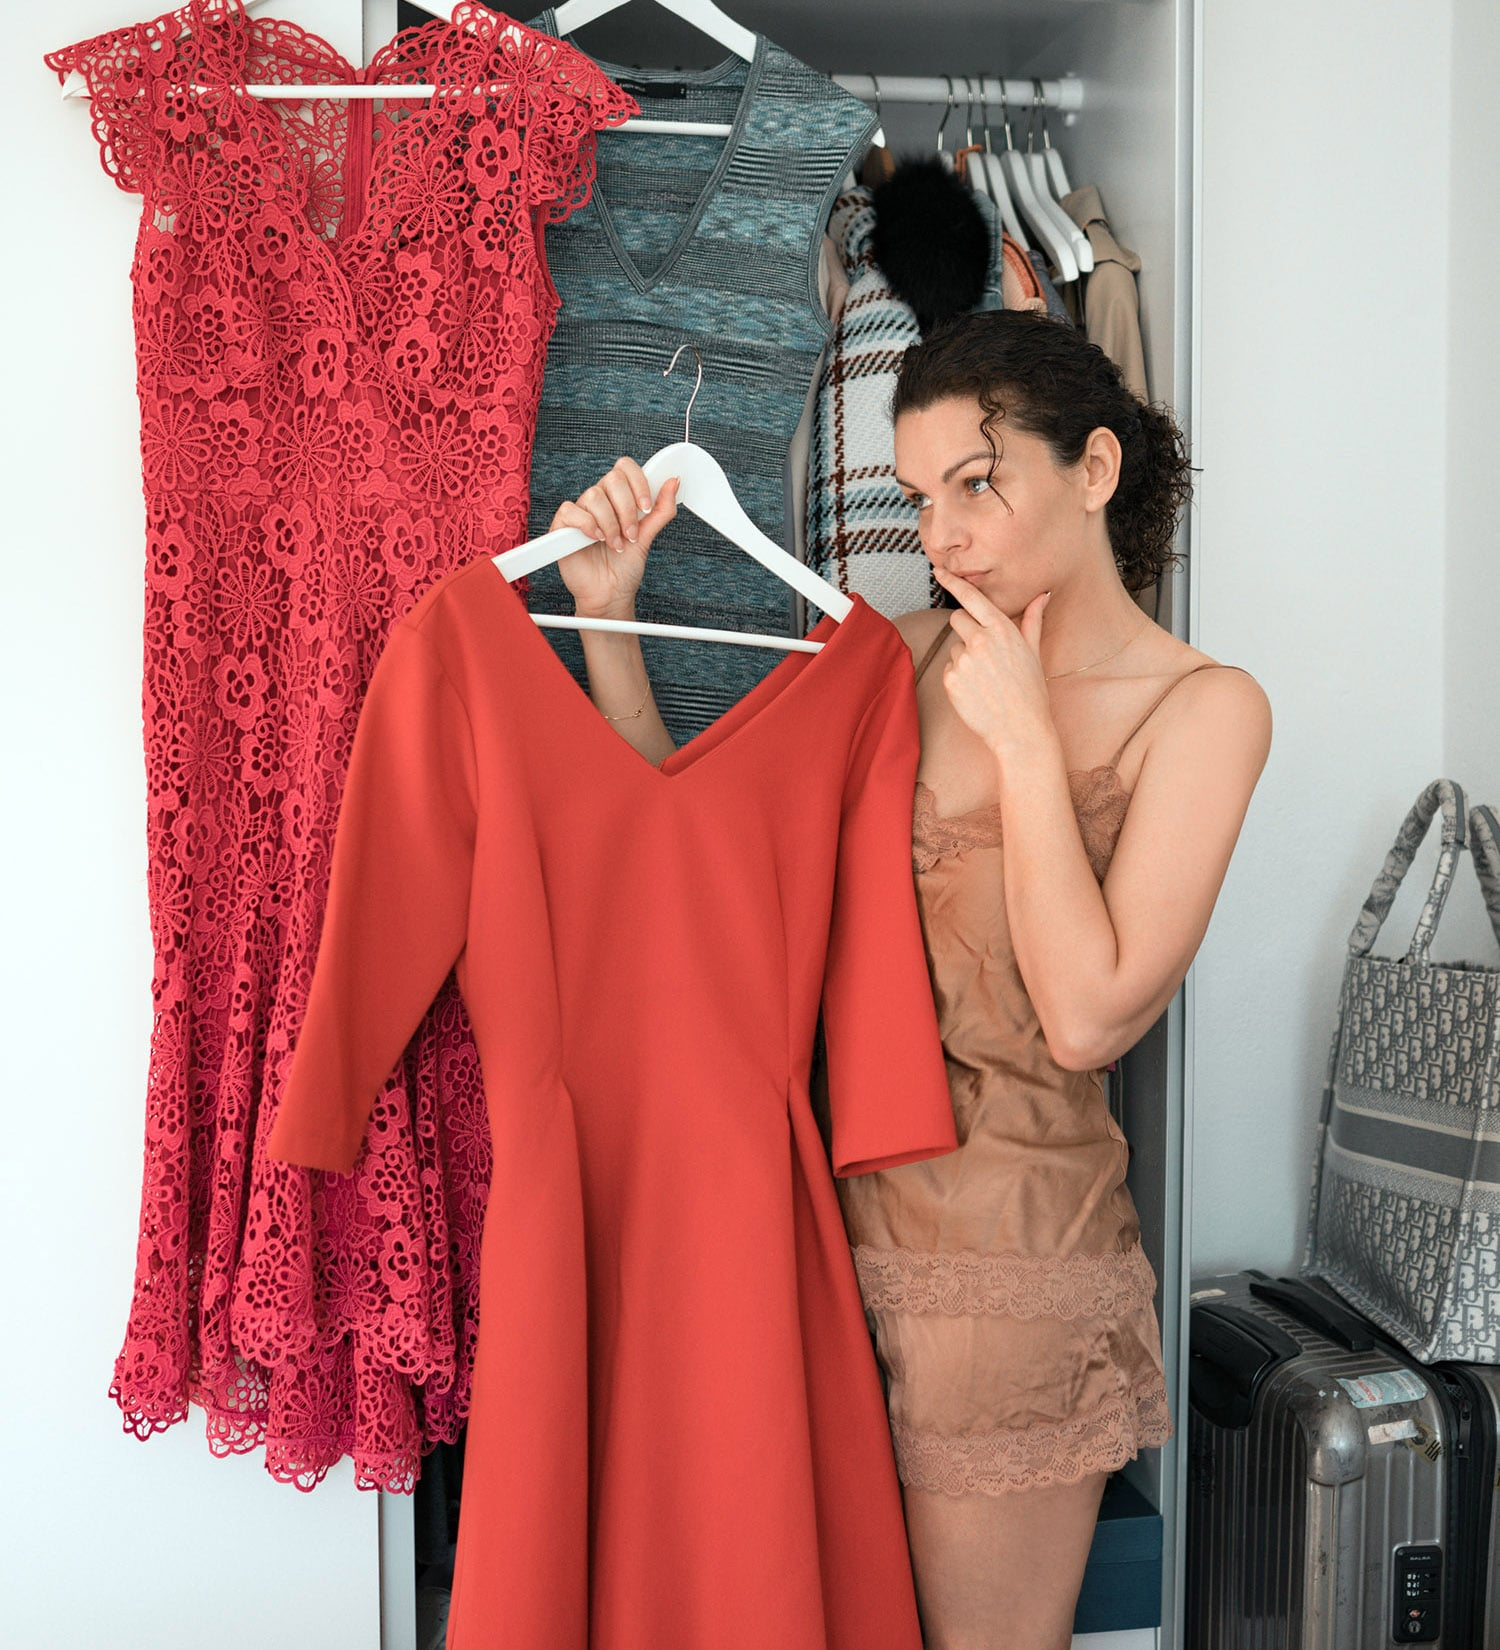 woman holding red dress in front of wardrobe